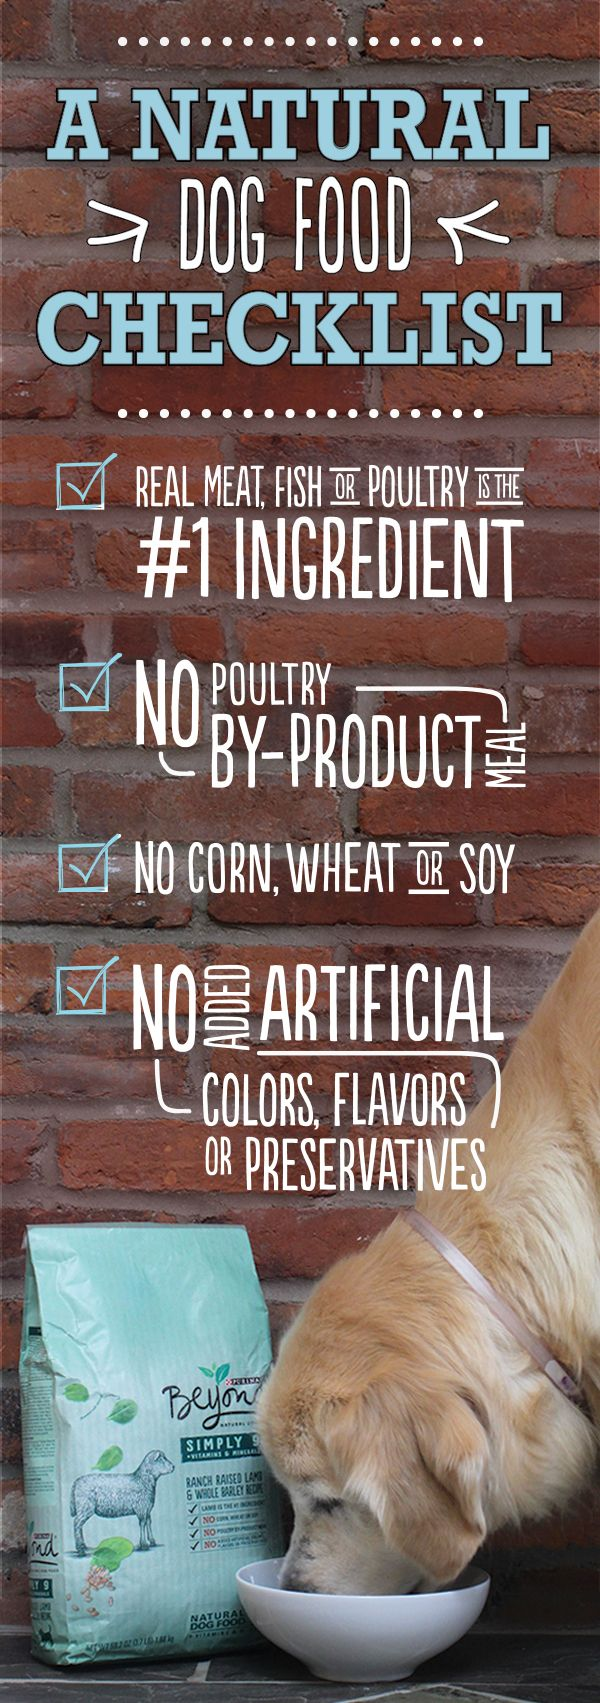 Looking for a healthy dog food? Make sure the ingredients are natural and the label starts with a high-quality protein source. But you should also check to see how the food goes beyond—Ask if a pet nutritionist creates the recipe. And find out if ingredients are sourced using thorough safety and quality checks.